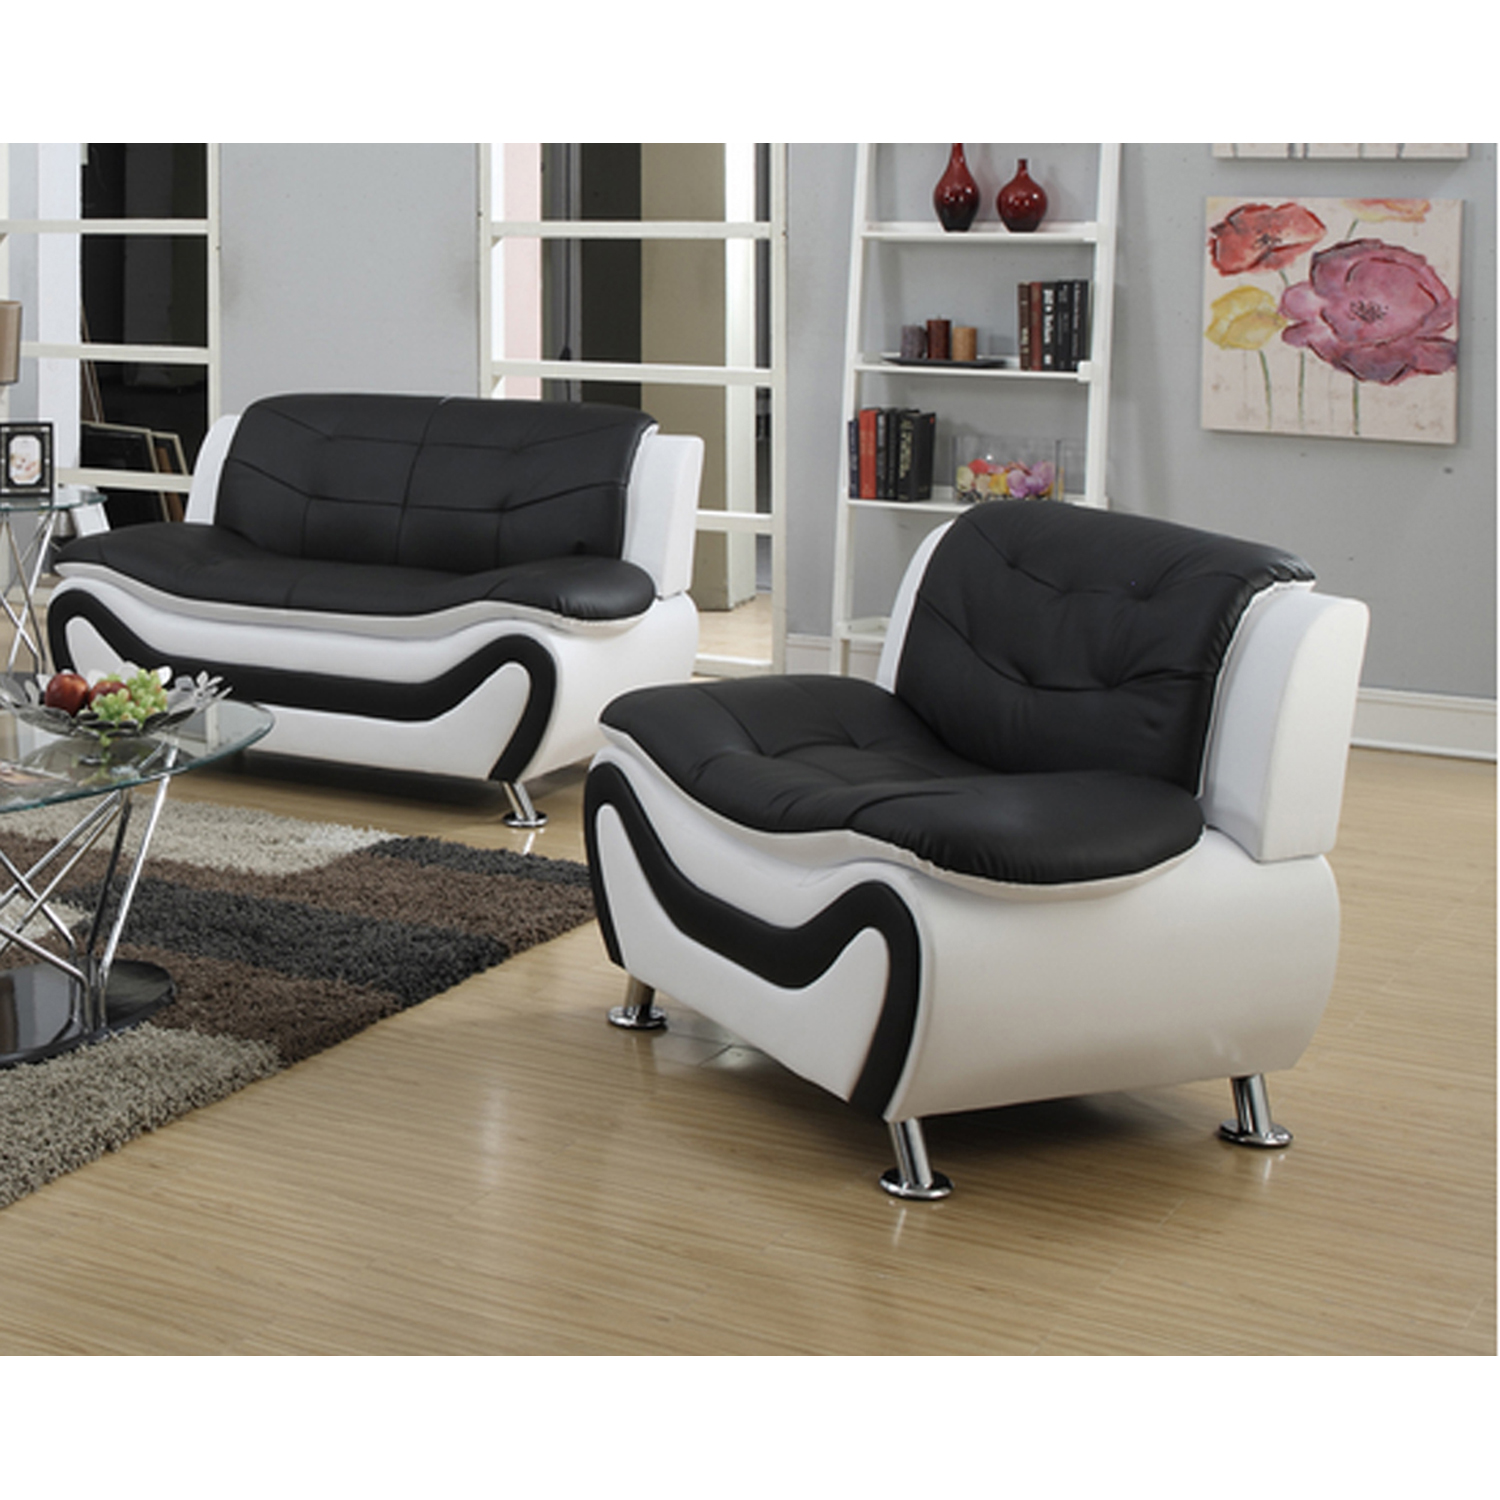 Fantastic Frady Black And White Faux Leather Modern Living Room Loveseat And Chair Set Caraccident5 Cool Chair Designs And Ideas Caraccident5Info